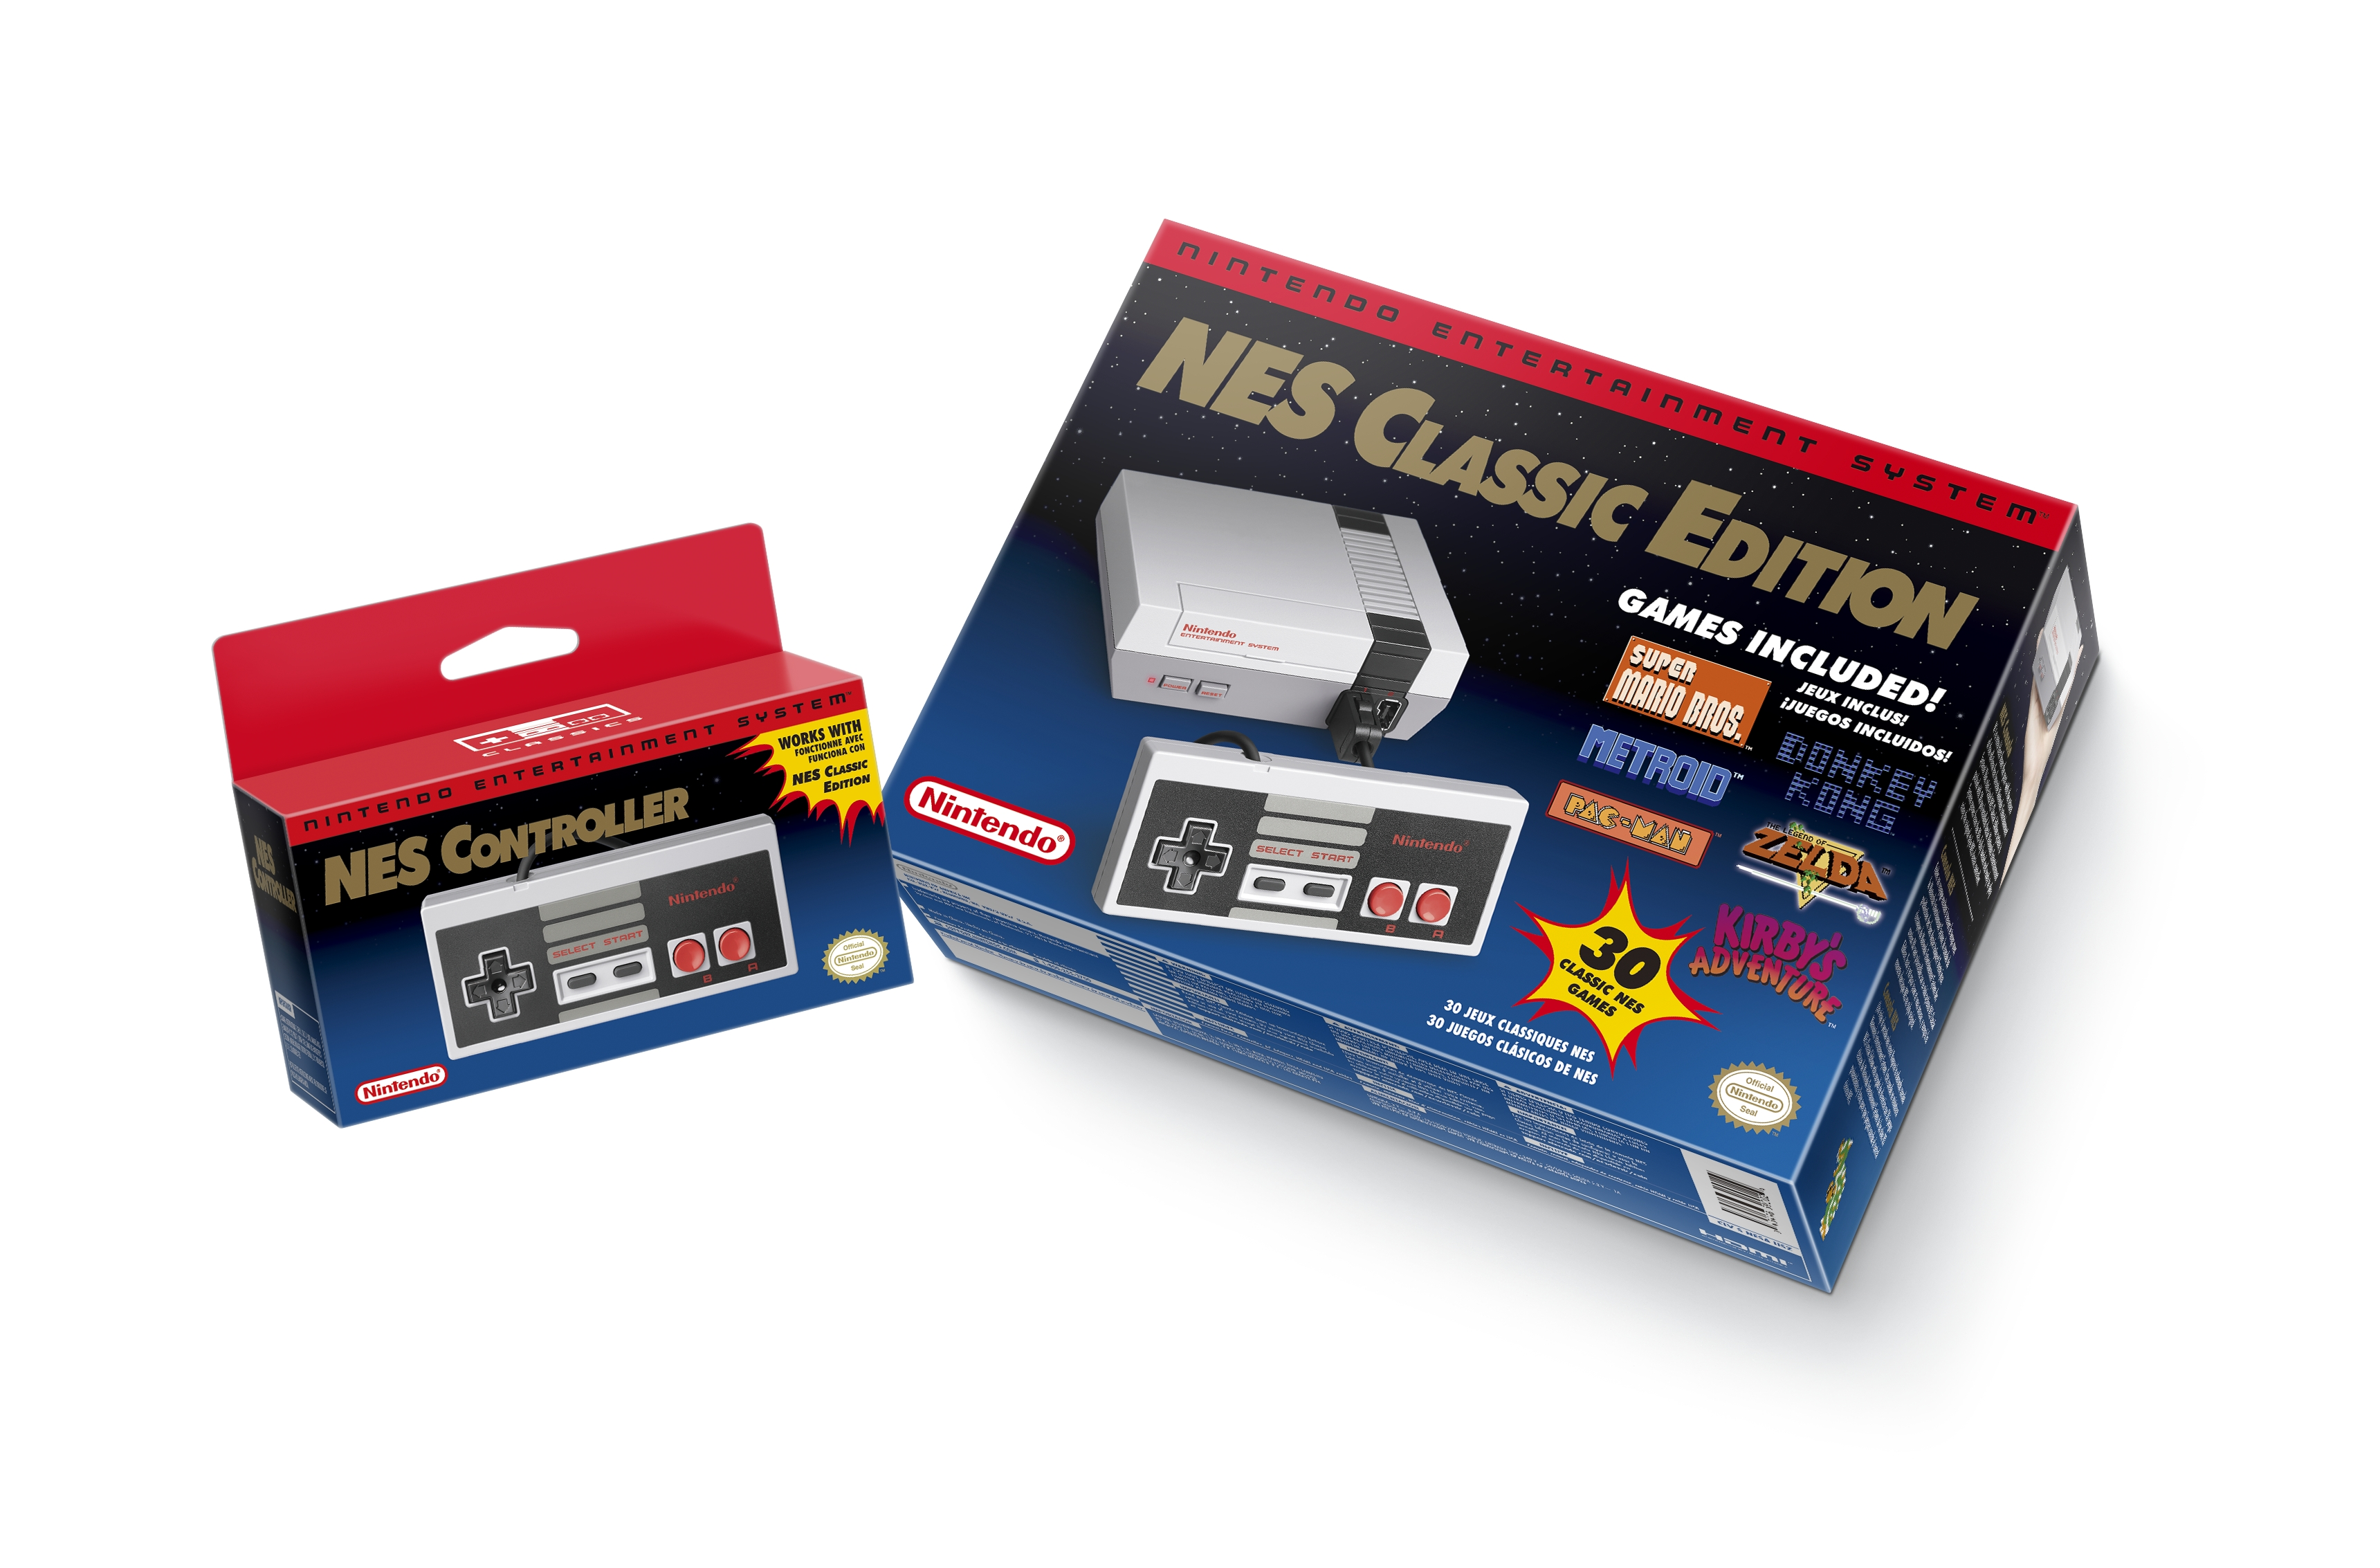 NES Classic Edition and optional second gamepad